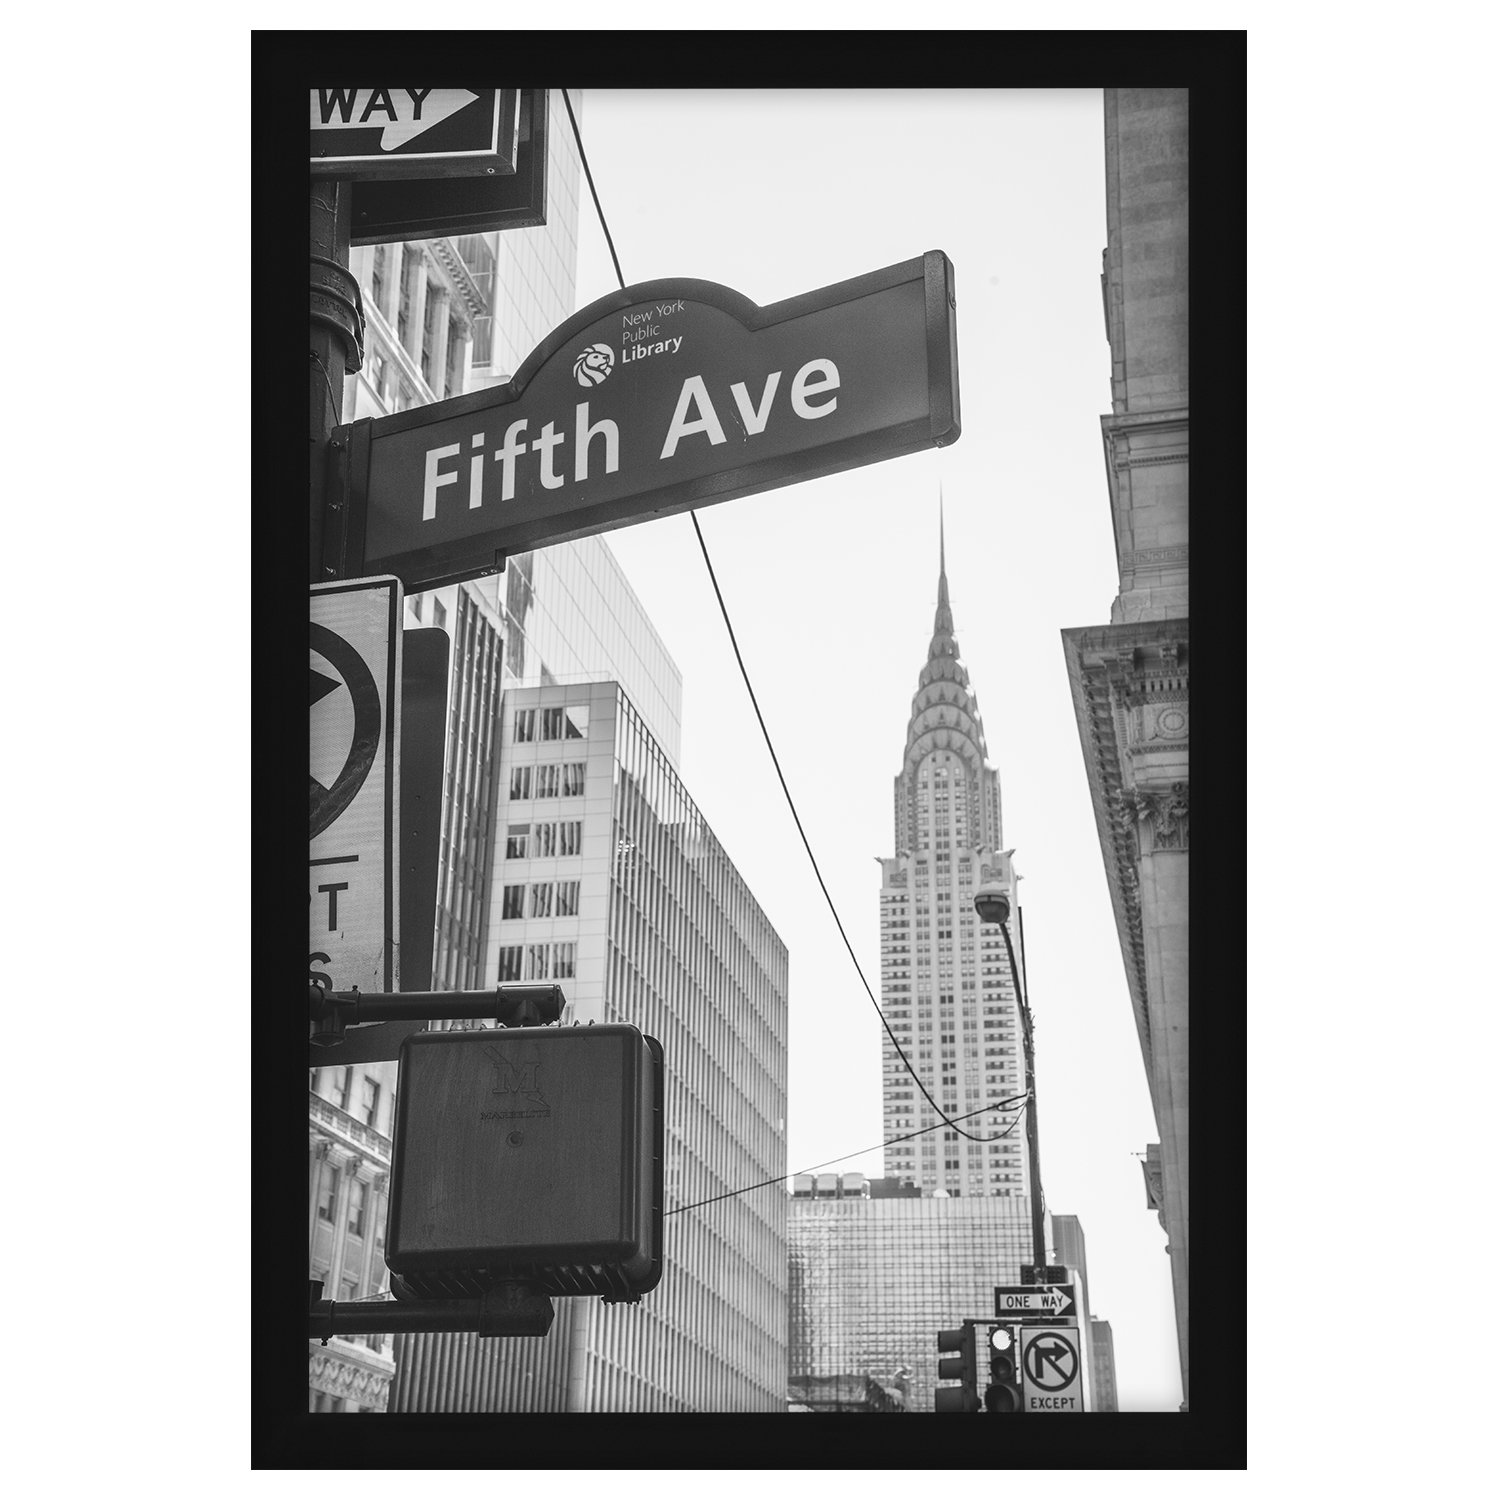 Americanflat 13x19 Black Poster Frame - Designed to Display Vertically Horizontally on a Wall - Plexiglass Front